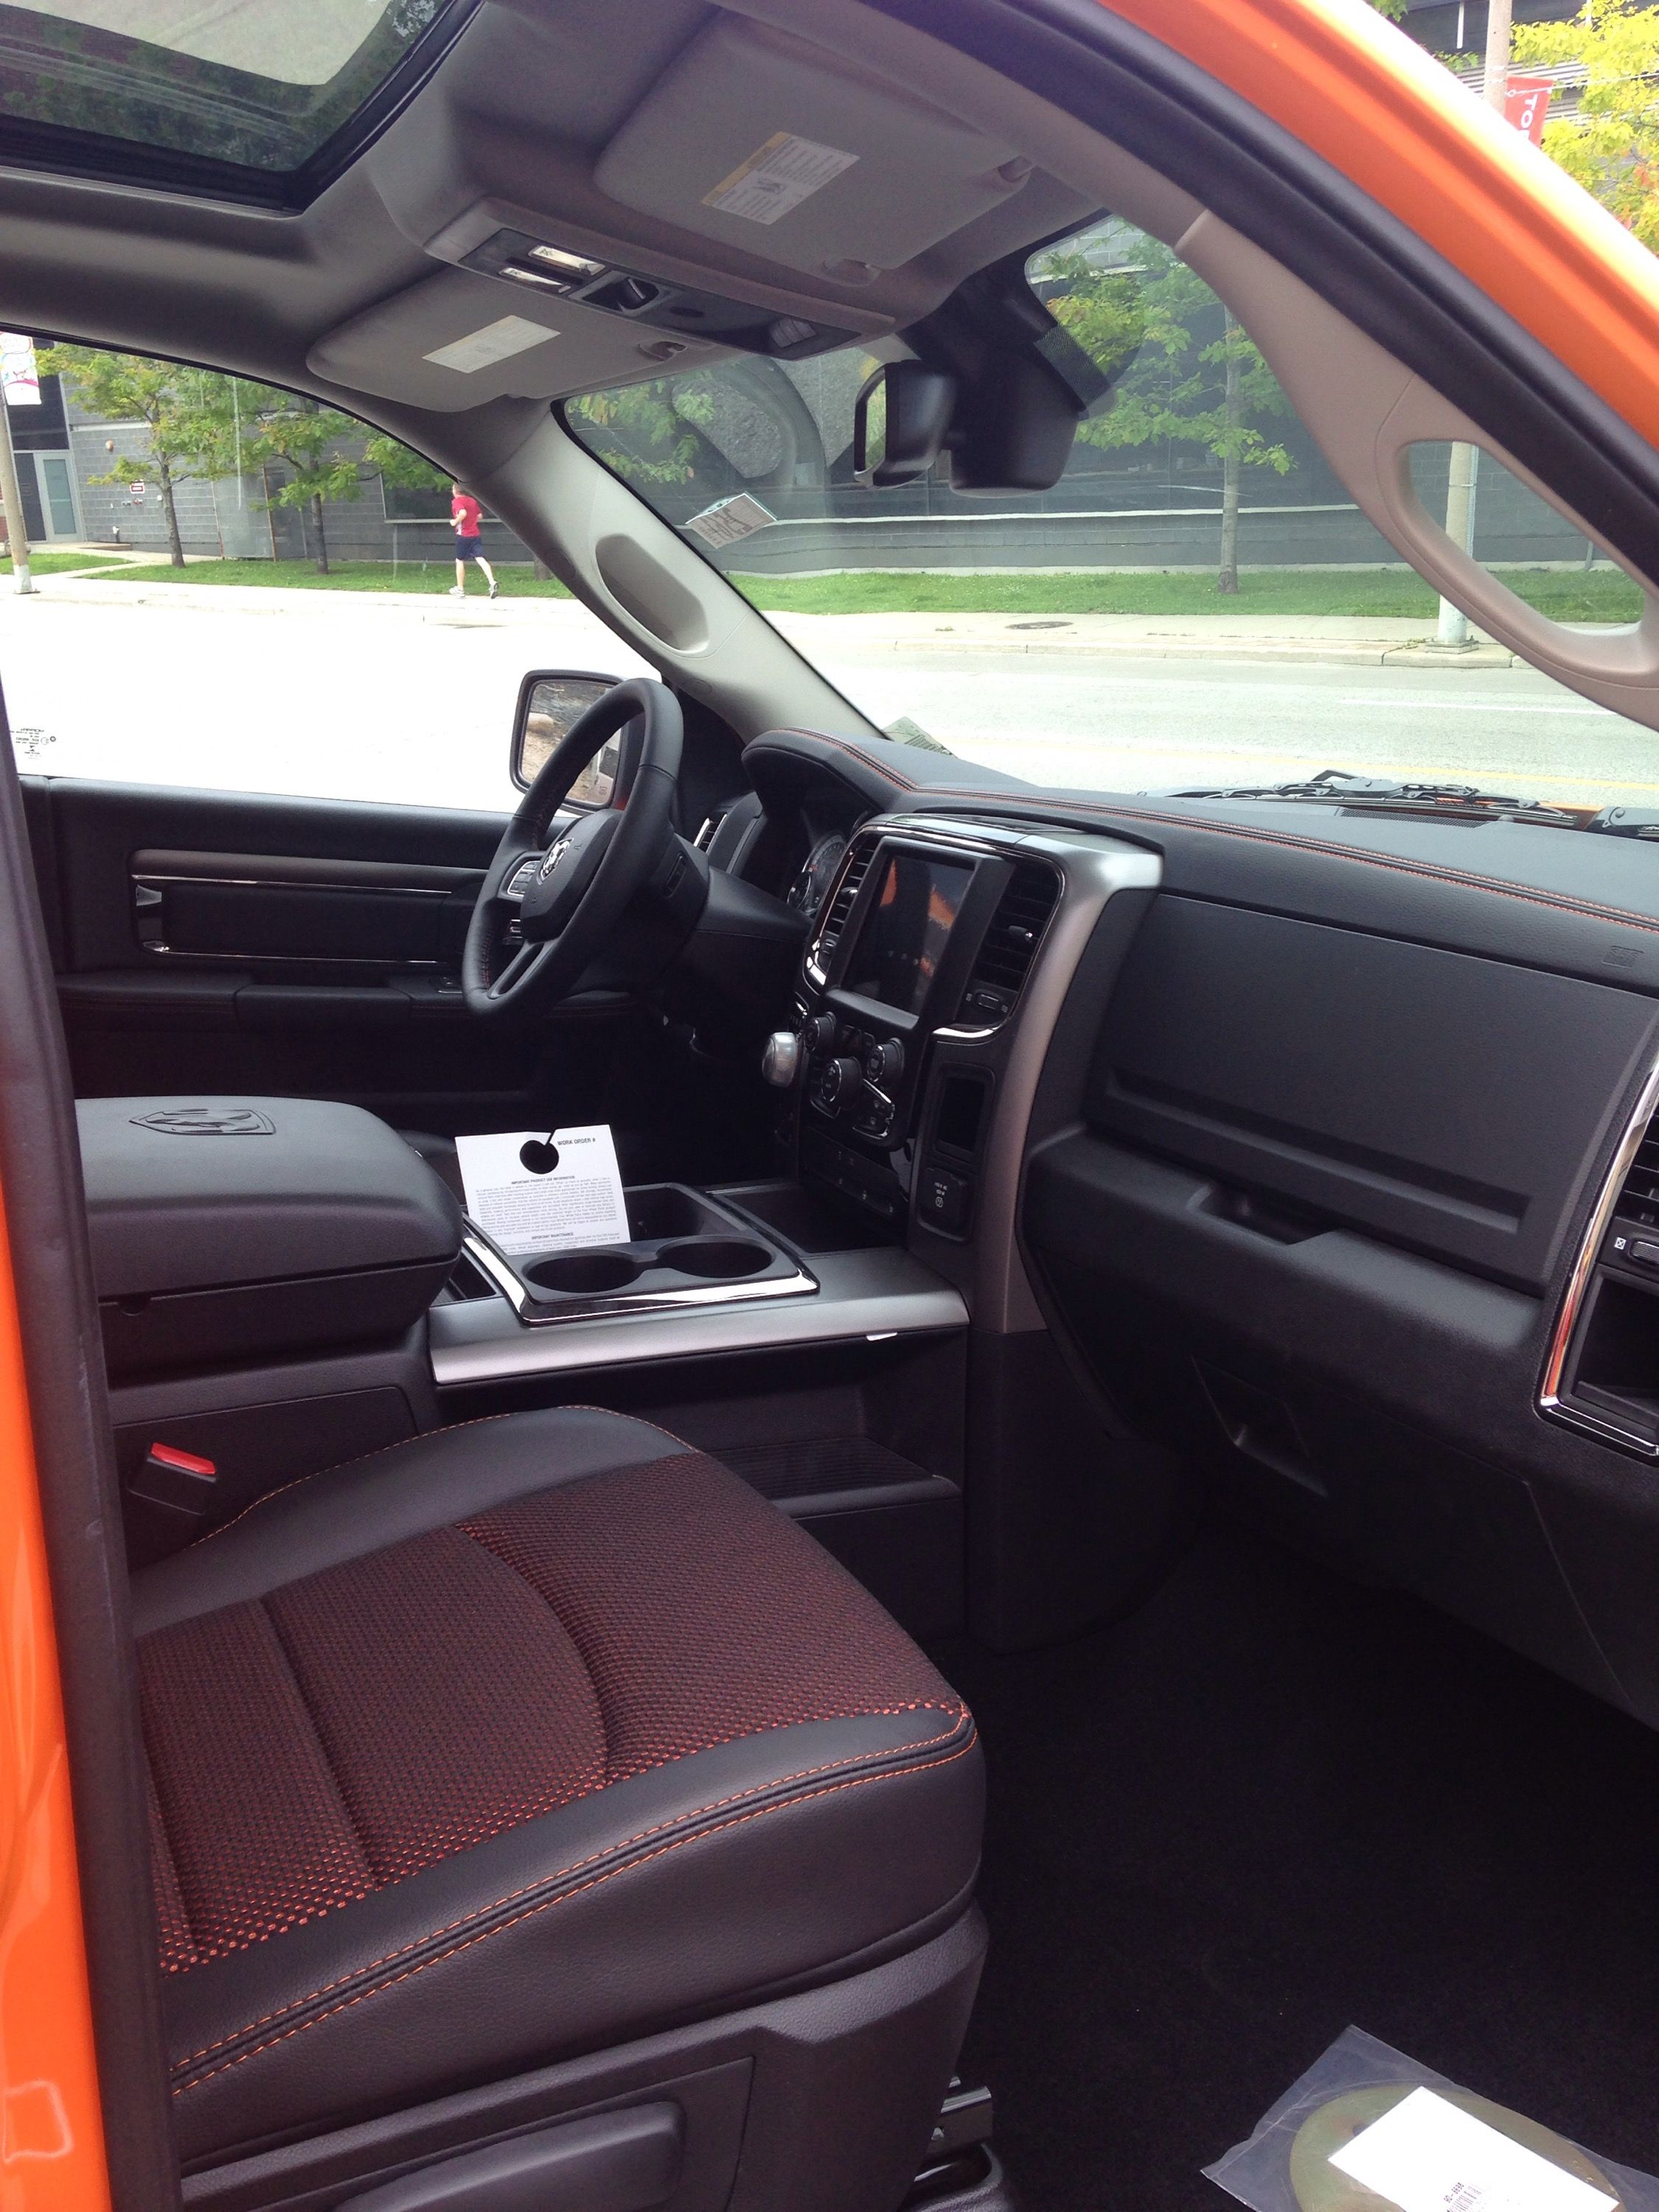 2015 Dodge Ram 1500 Ignition Orange Interior.